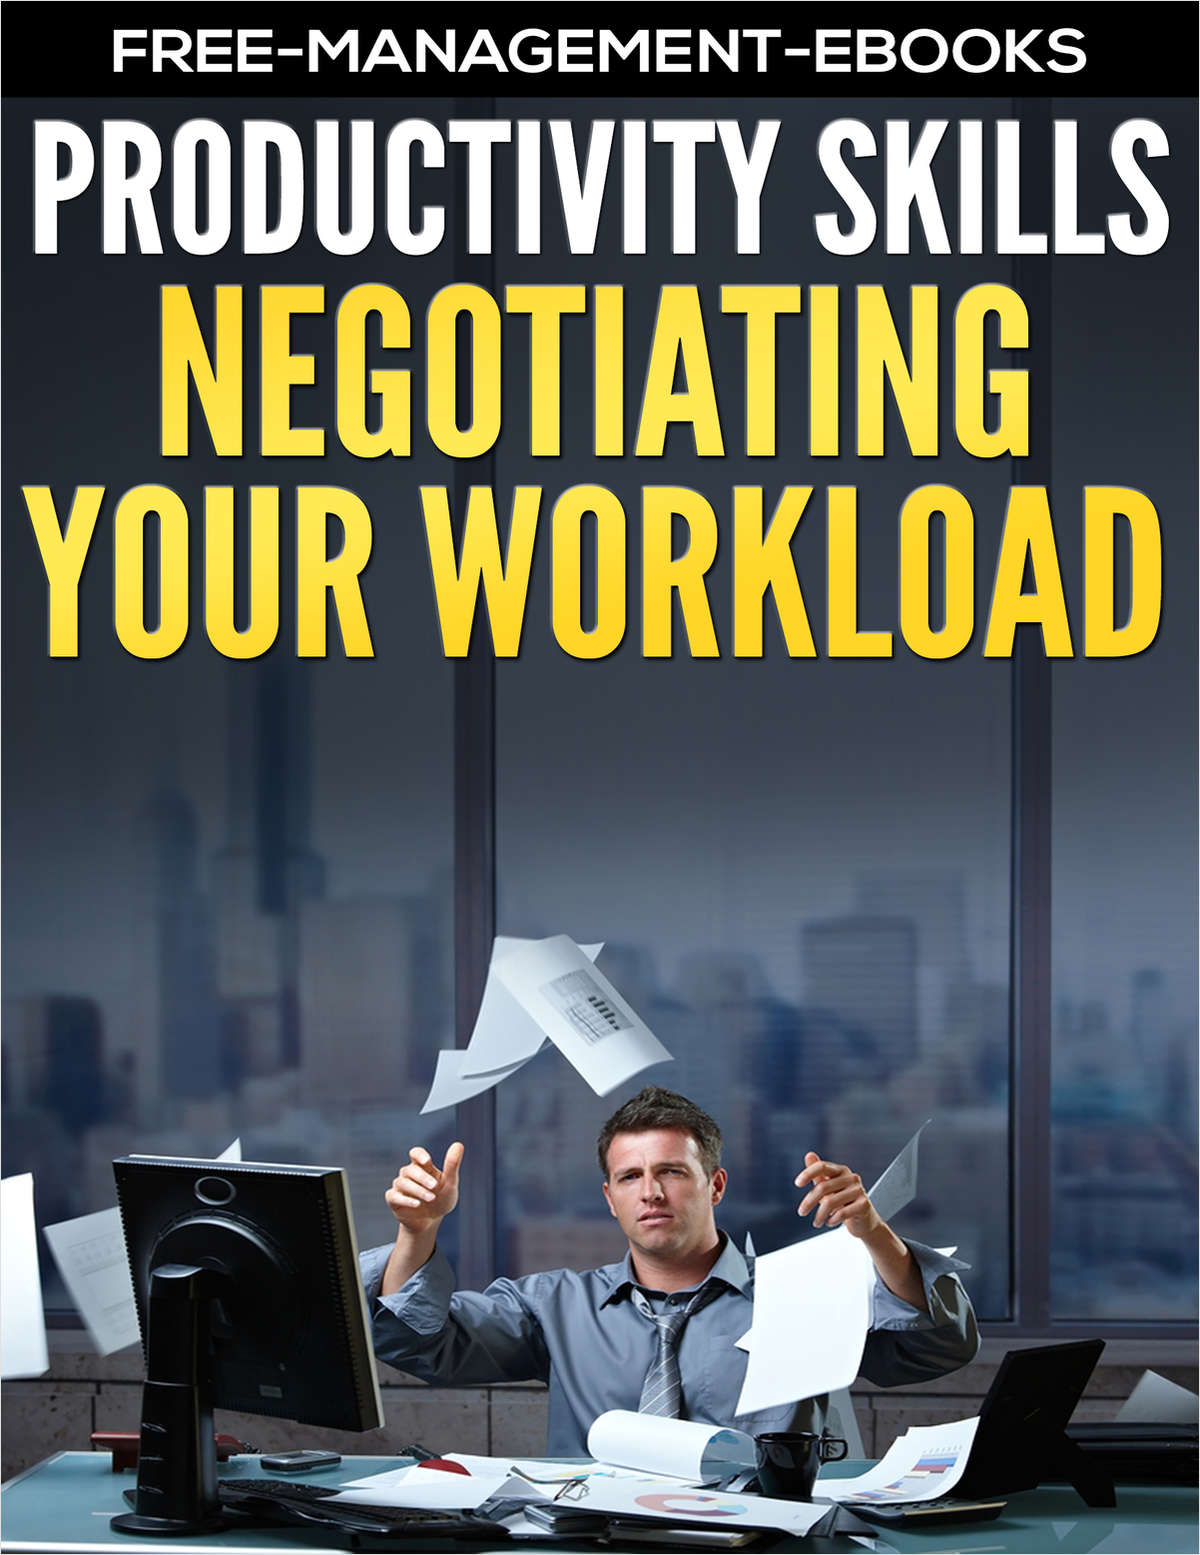 Negotiating Your Workload - Developing Your Productivity Skills